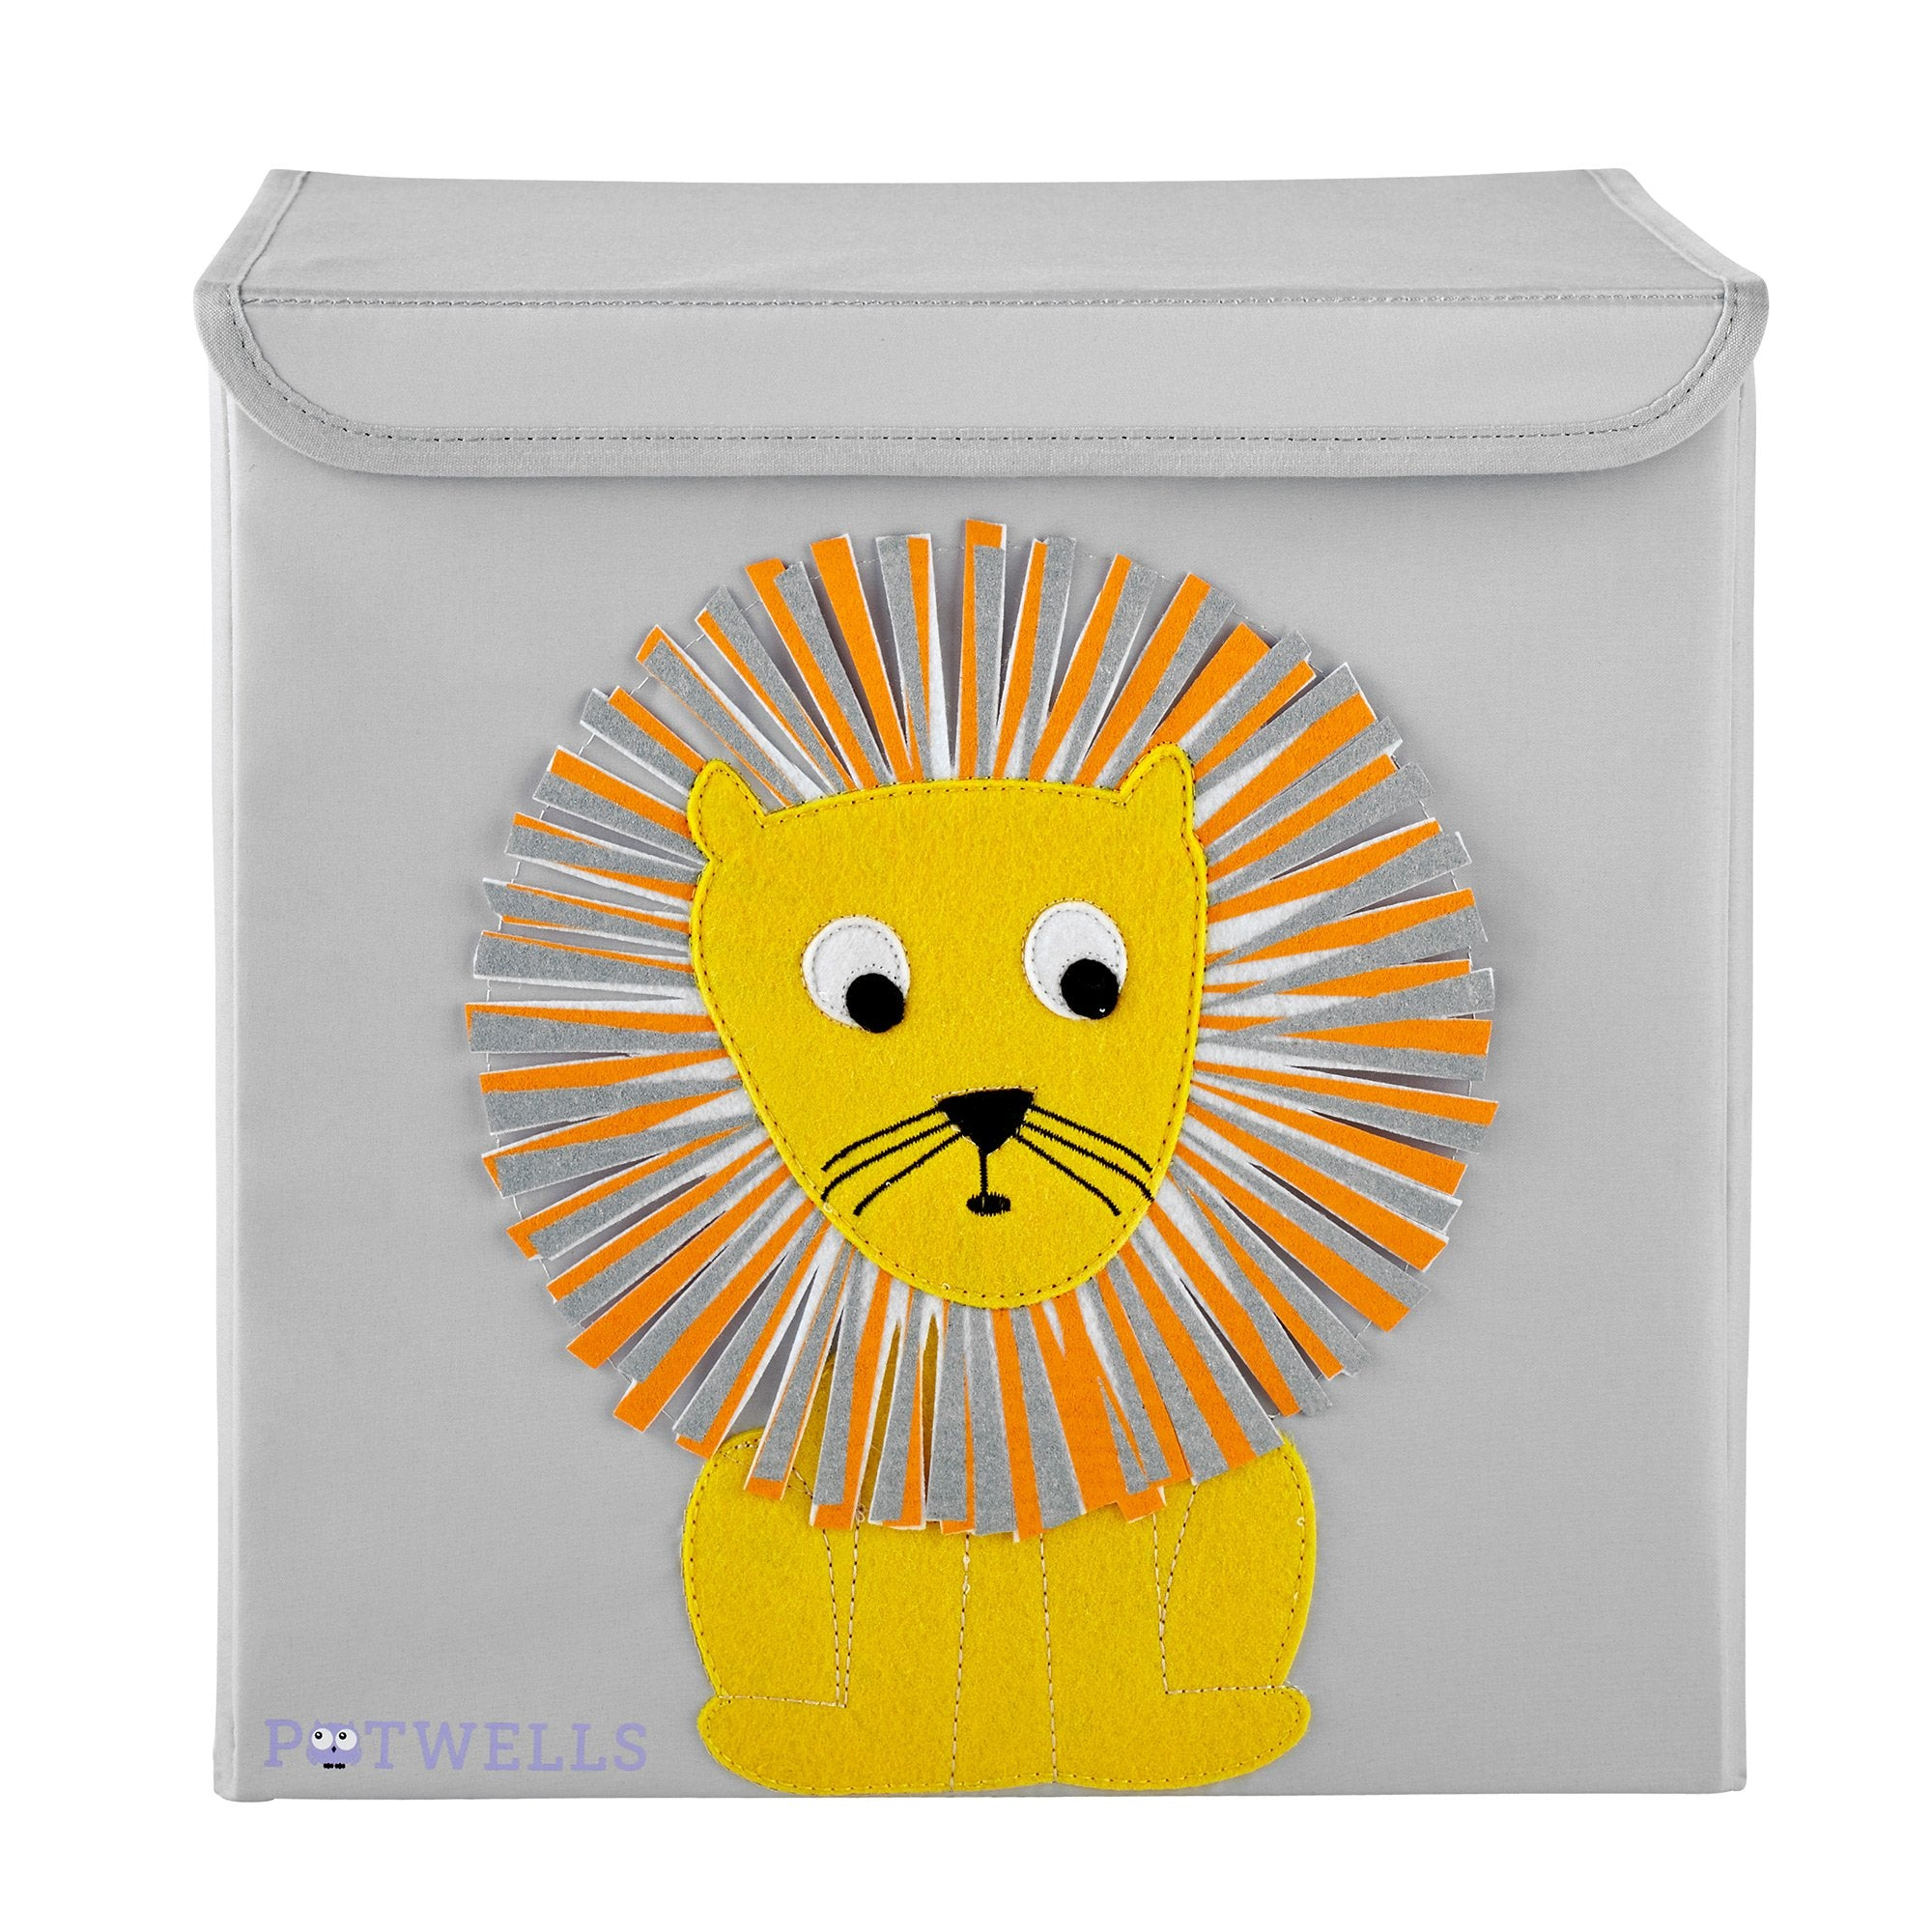 Potwells Storage Box - Lion